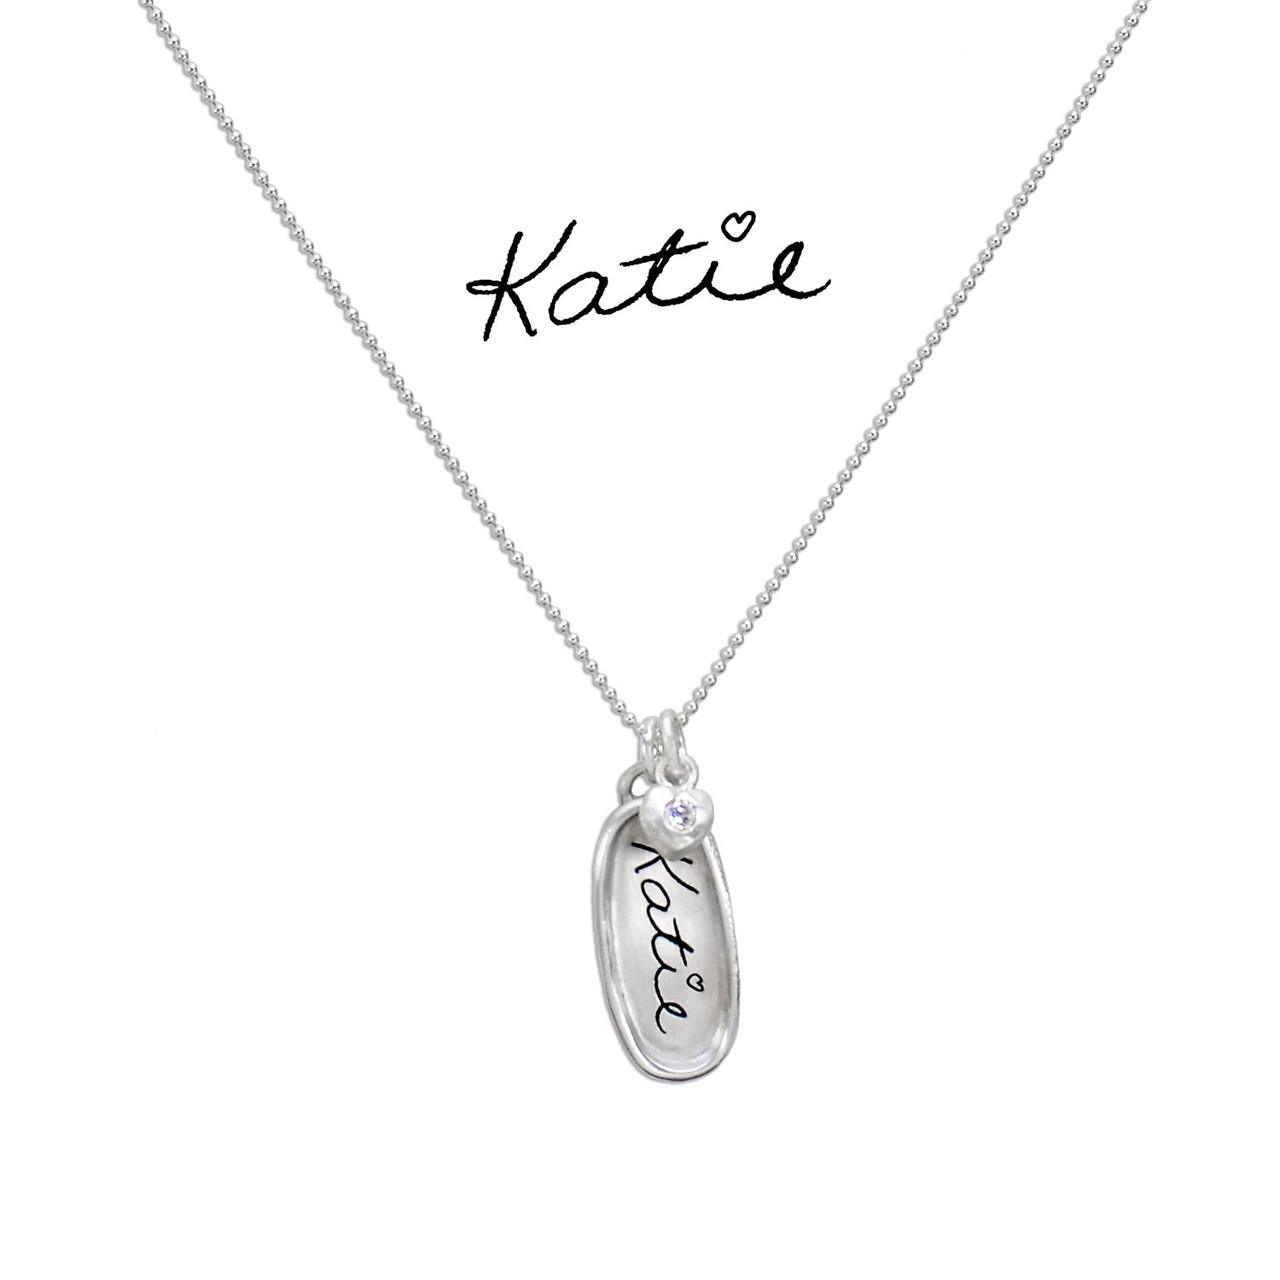 Handwritten name necklace, with silver oval charm, with the actual handwriting